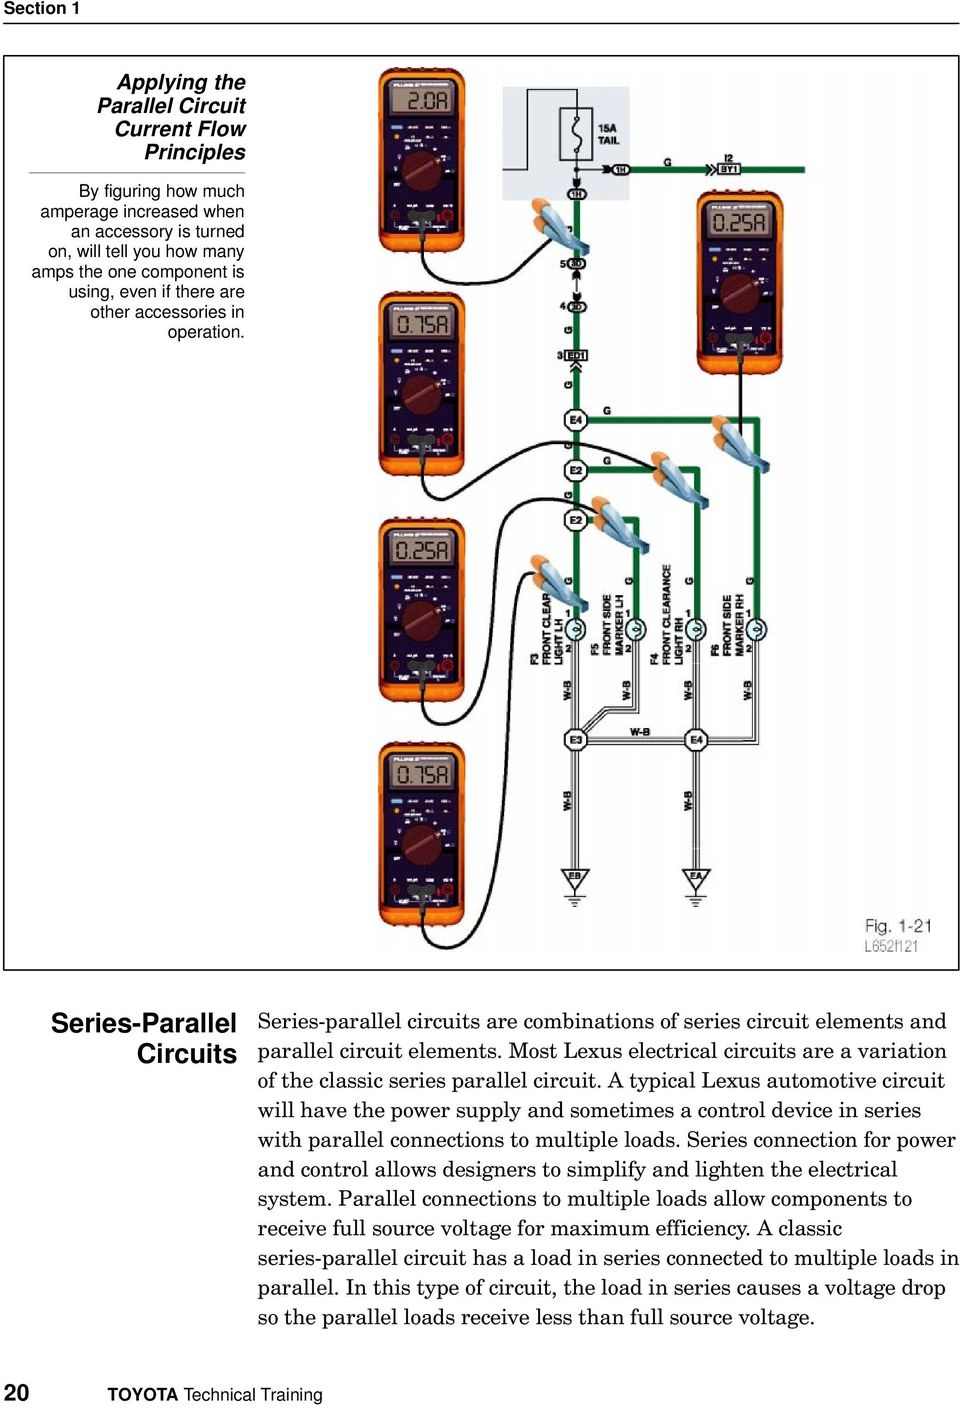 Most Lexus electrical circuits are a variation of the classic series parallel circuit.